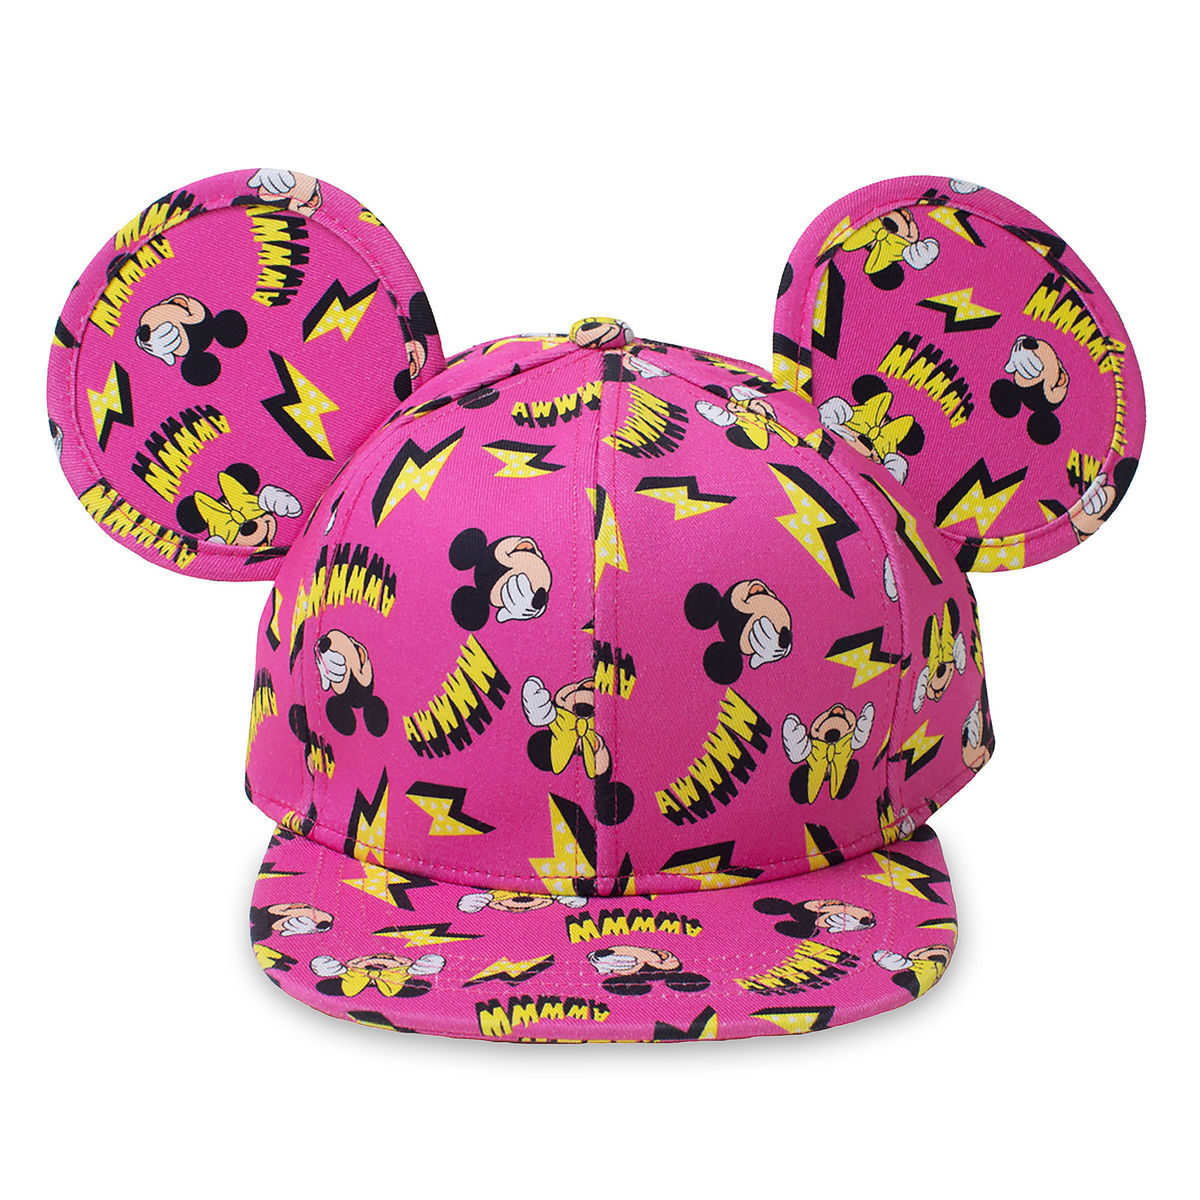 5cf2a83b65b Product Image of Mickey Mouse Electric Ears Hat for Adults by Cakeworthy   1